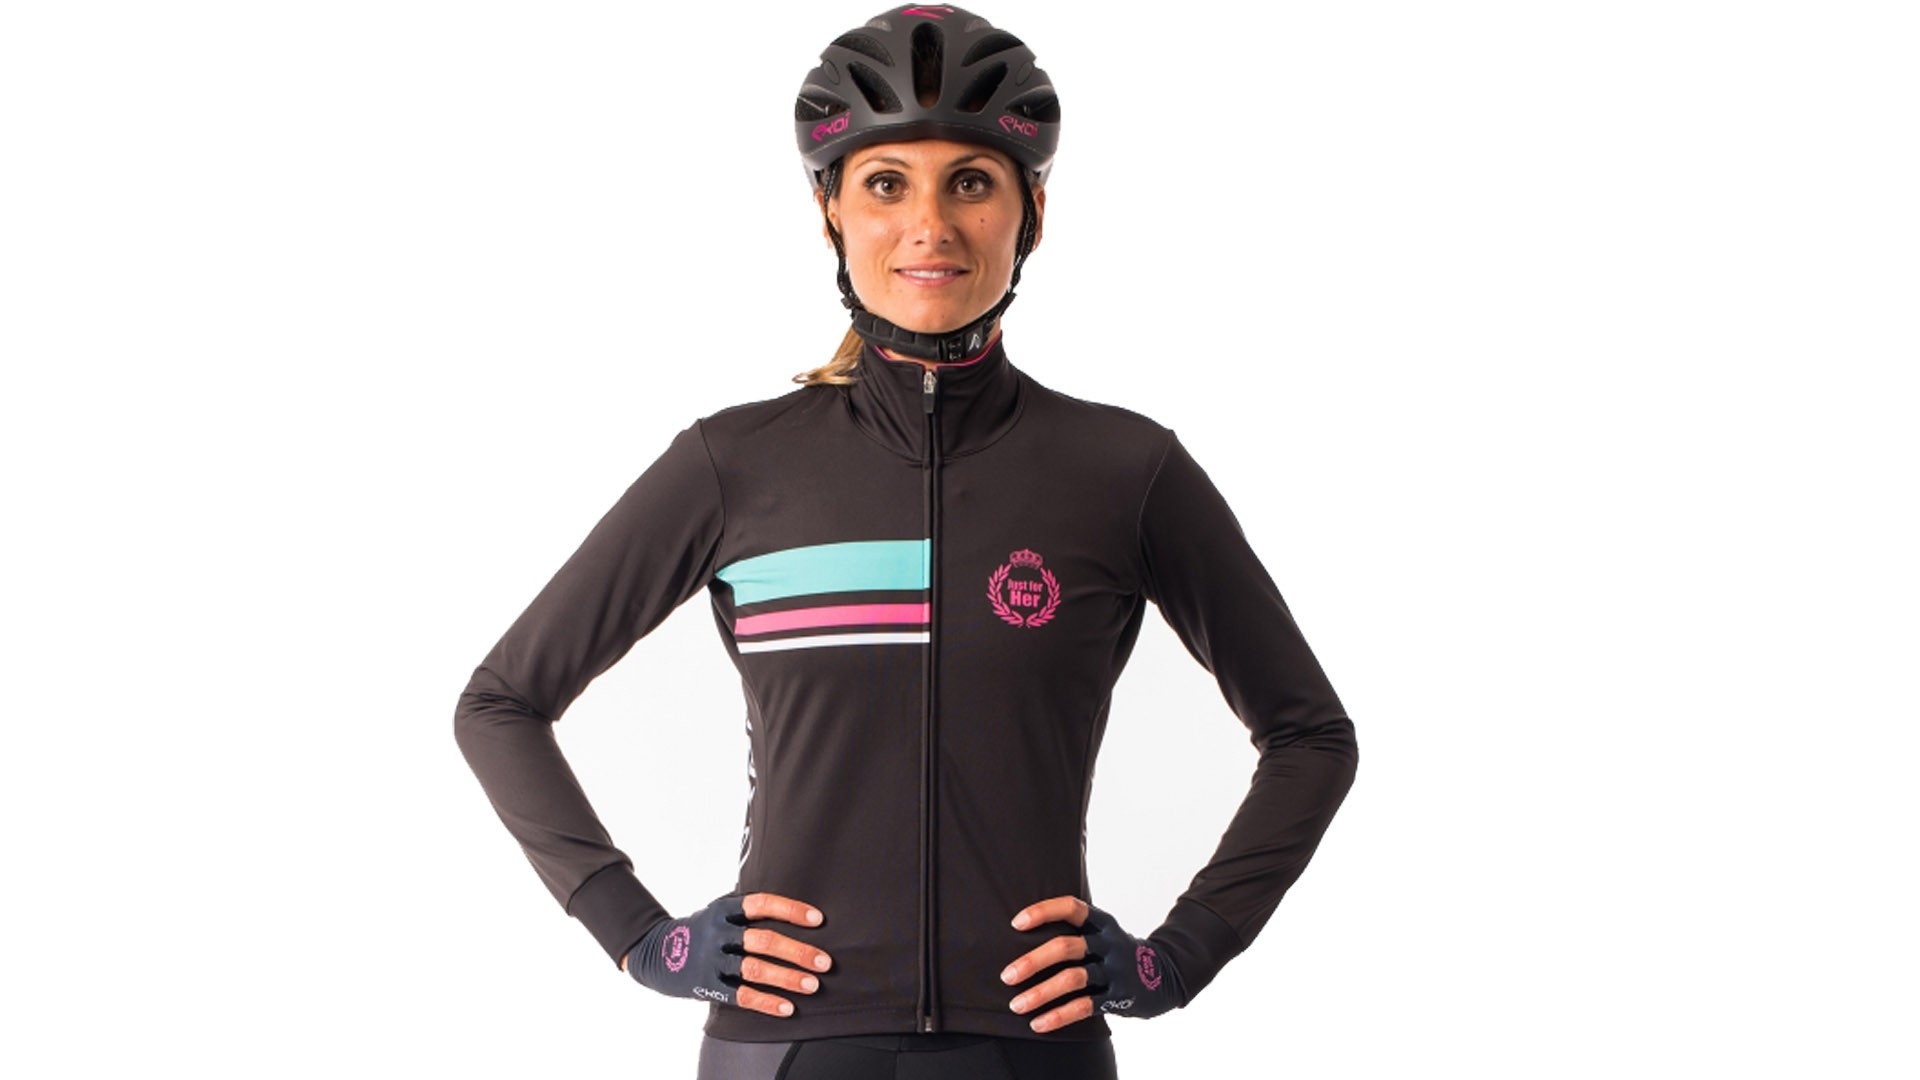 For wetter weather there's a rain resistant long-sleeved jersey